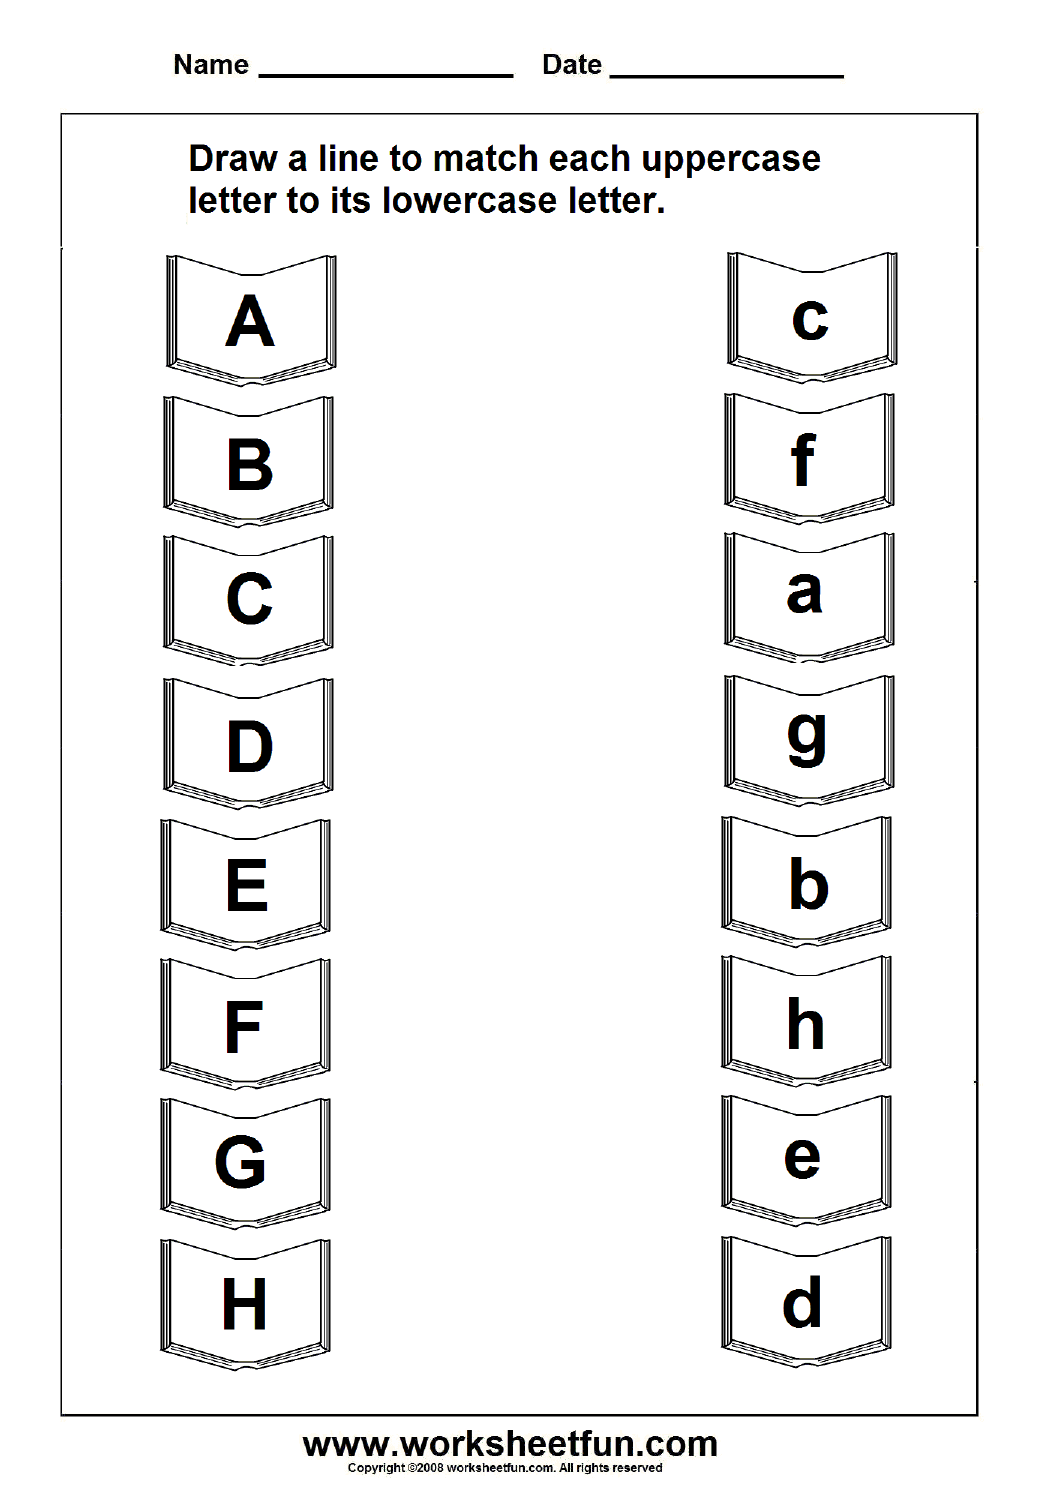 Workbooks » Matching Alphabets With Pictures Free Worksheets